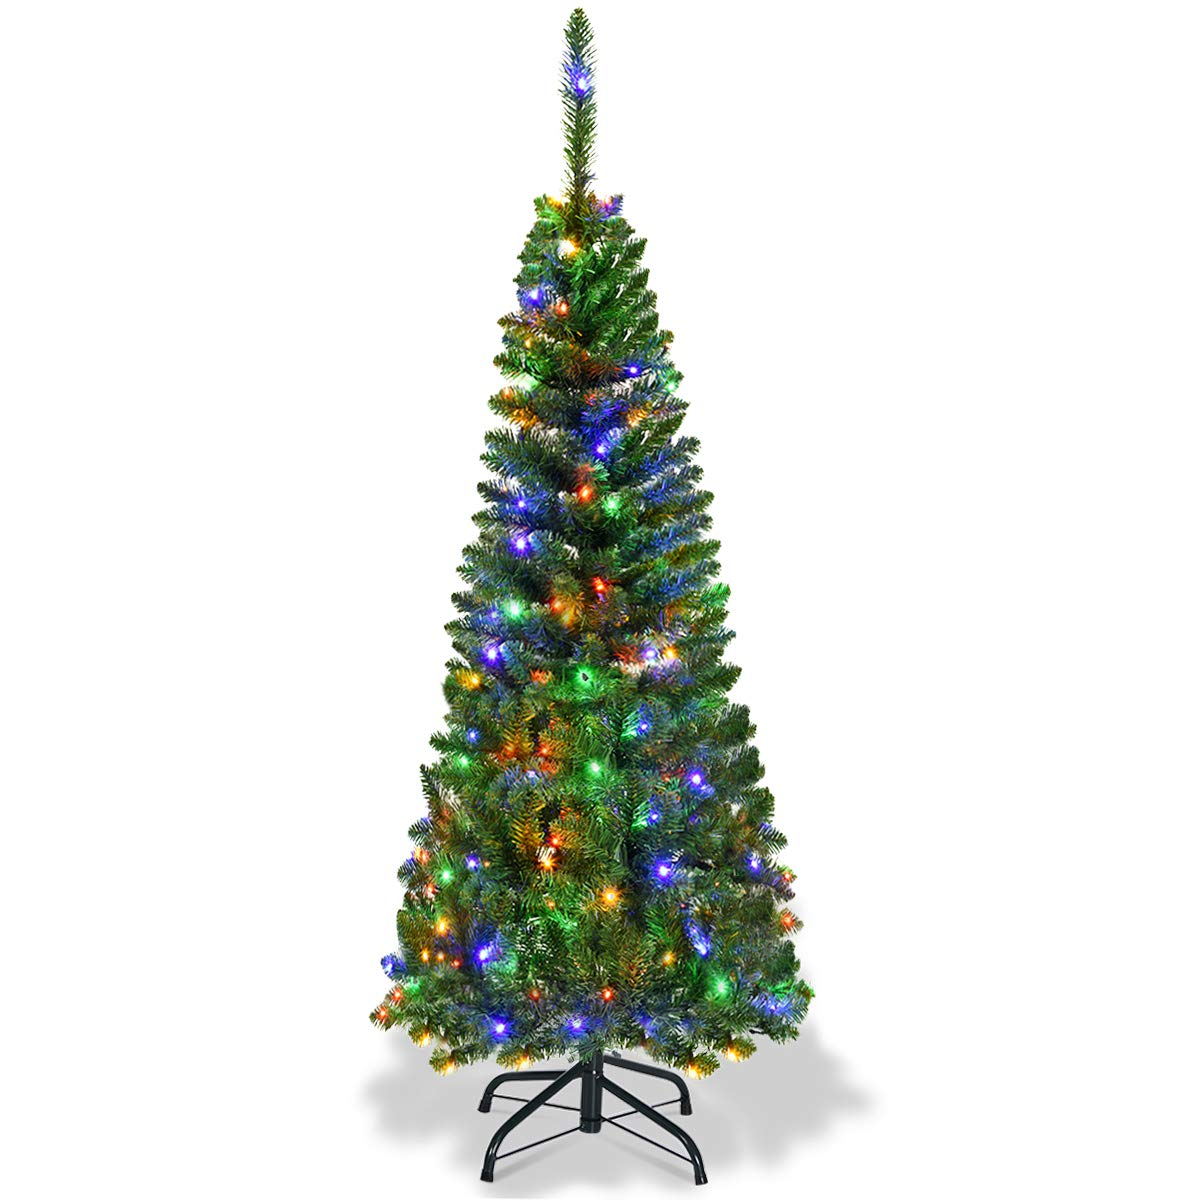 Goplus 7.5ft Prelit Pencil Christmas Tree, Premium Hinged Fir Tree, with LED Lights and Solid Metal Stand, Easy Assemble, Ideal Xmas Decor for Home and Office, Colored LED